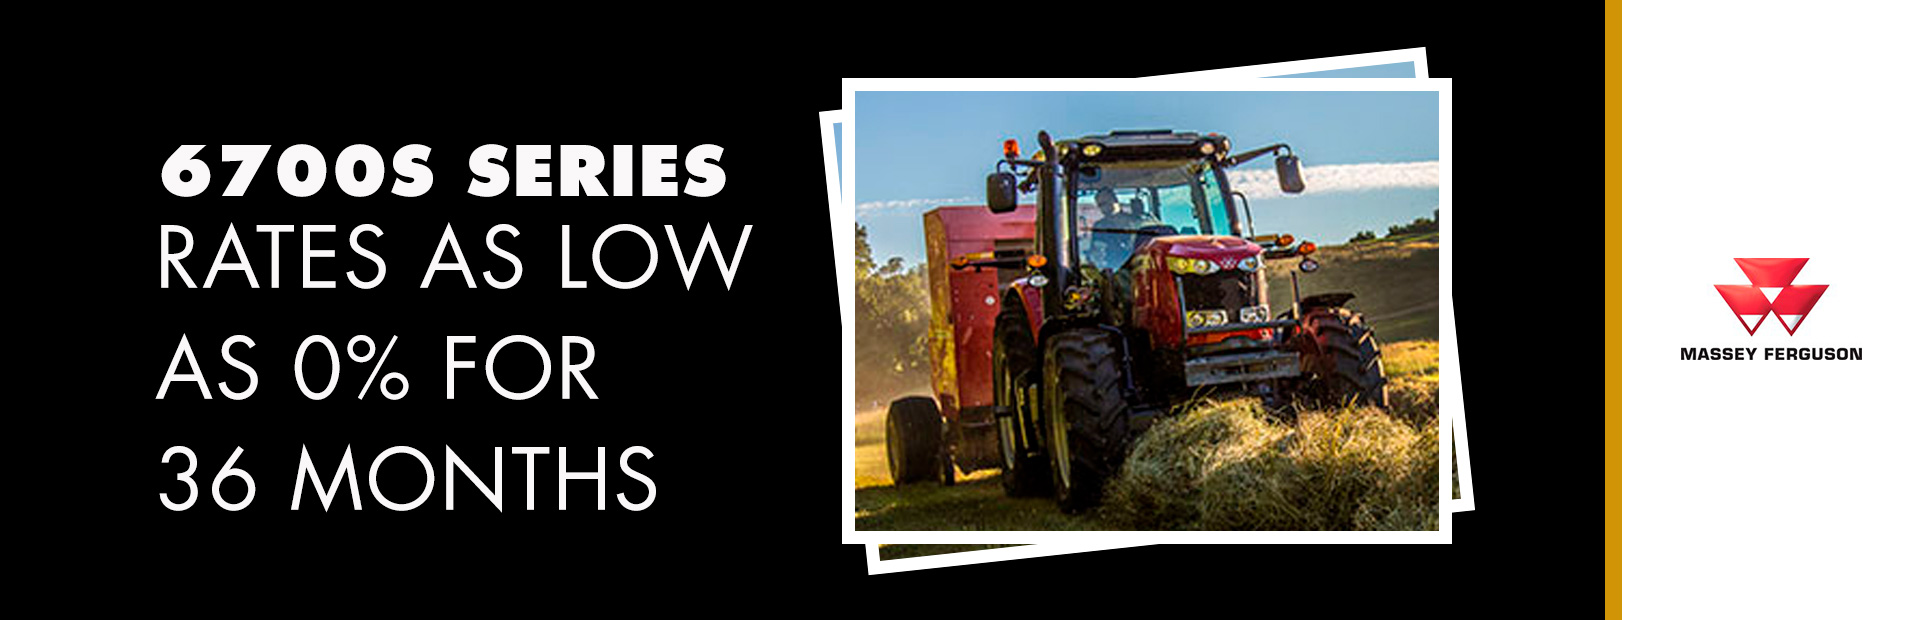 Massey Ferguson: 6700S Series - Rates as low as 0% for 36 Months